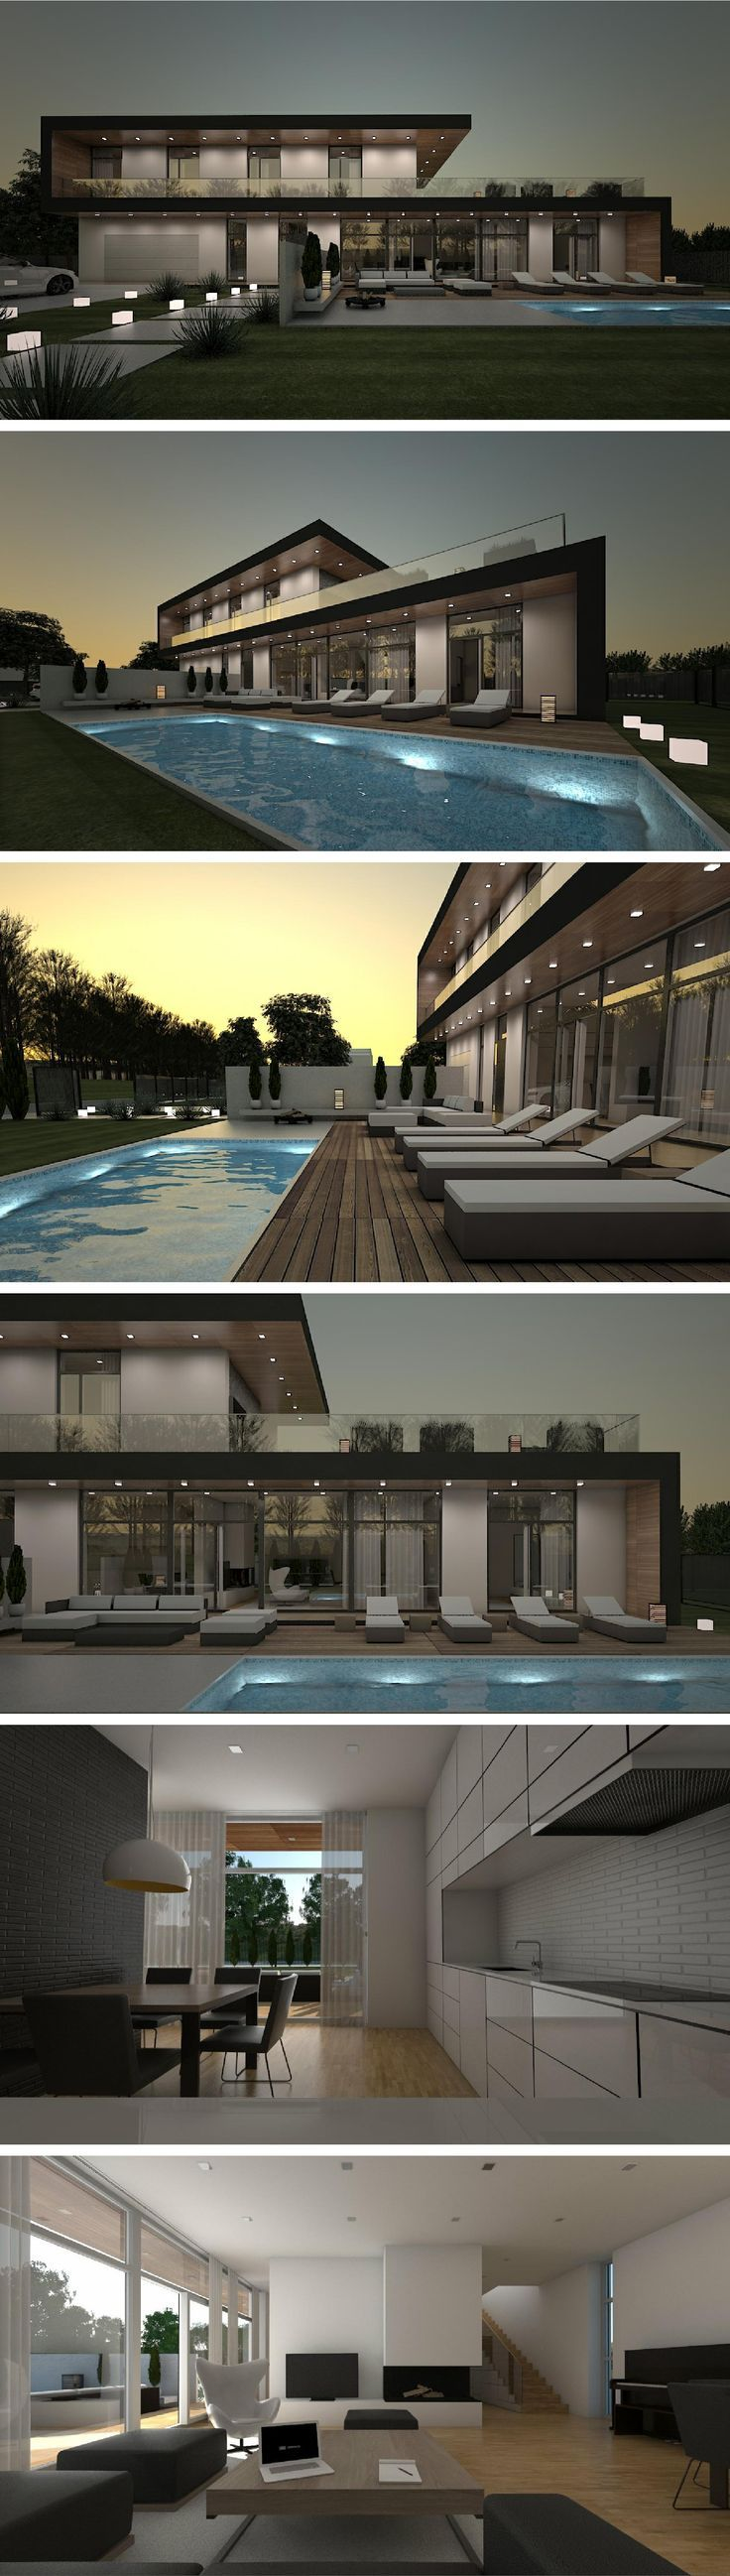 1000+ images about rchitecture / Private houses on Pinterest - ^